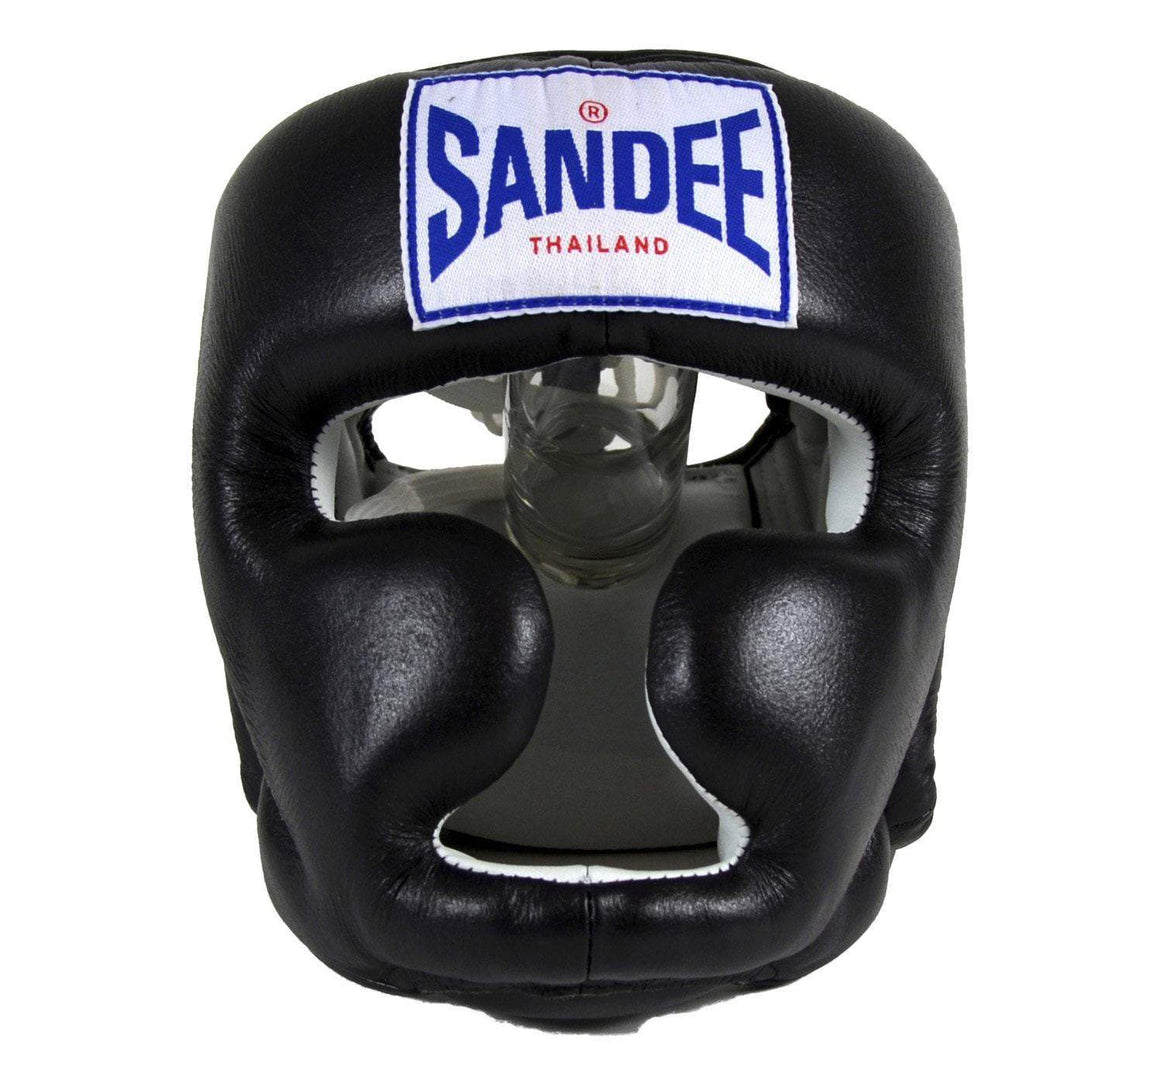 Sandee Closed Face Synthetic Leather Headgear - Black